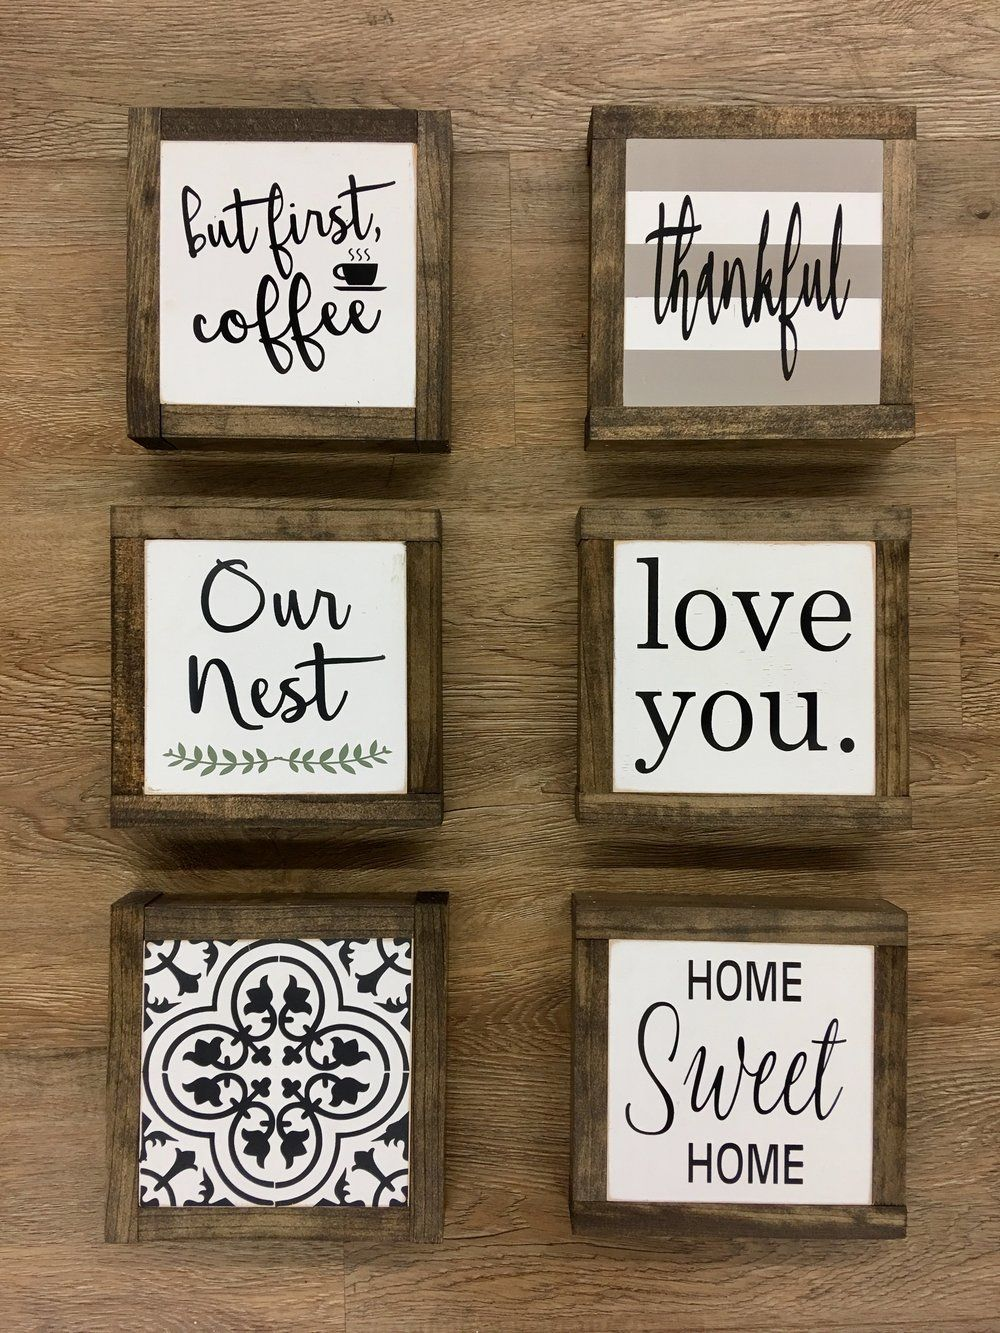 Adorable 6 X 6 Mini Signs Perfect For A Coffee Table Tray Shelf Or Other Small Area White Lightly Di Handmade Wood Signs Diy Wood Signs Rustic Wood Signs